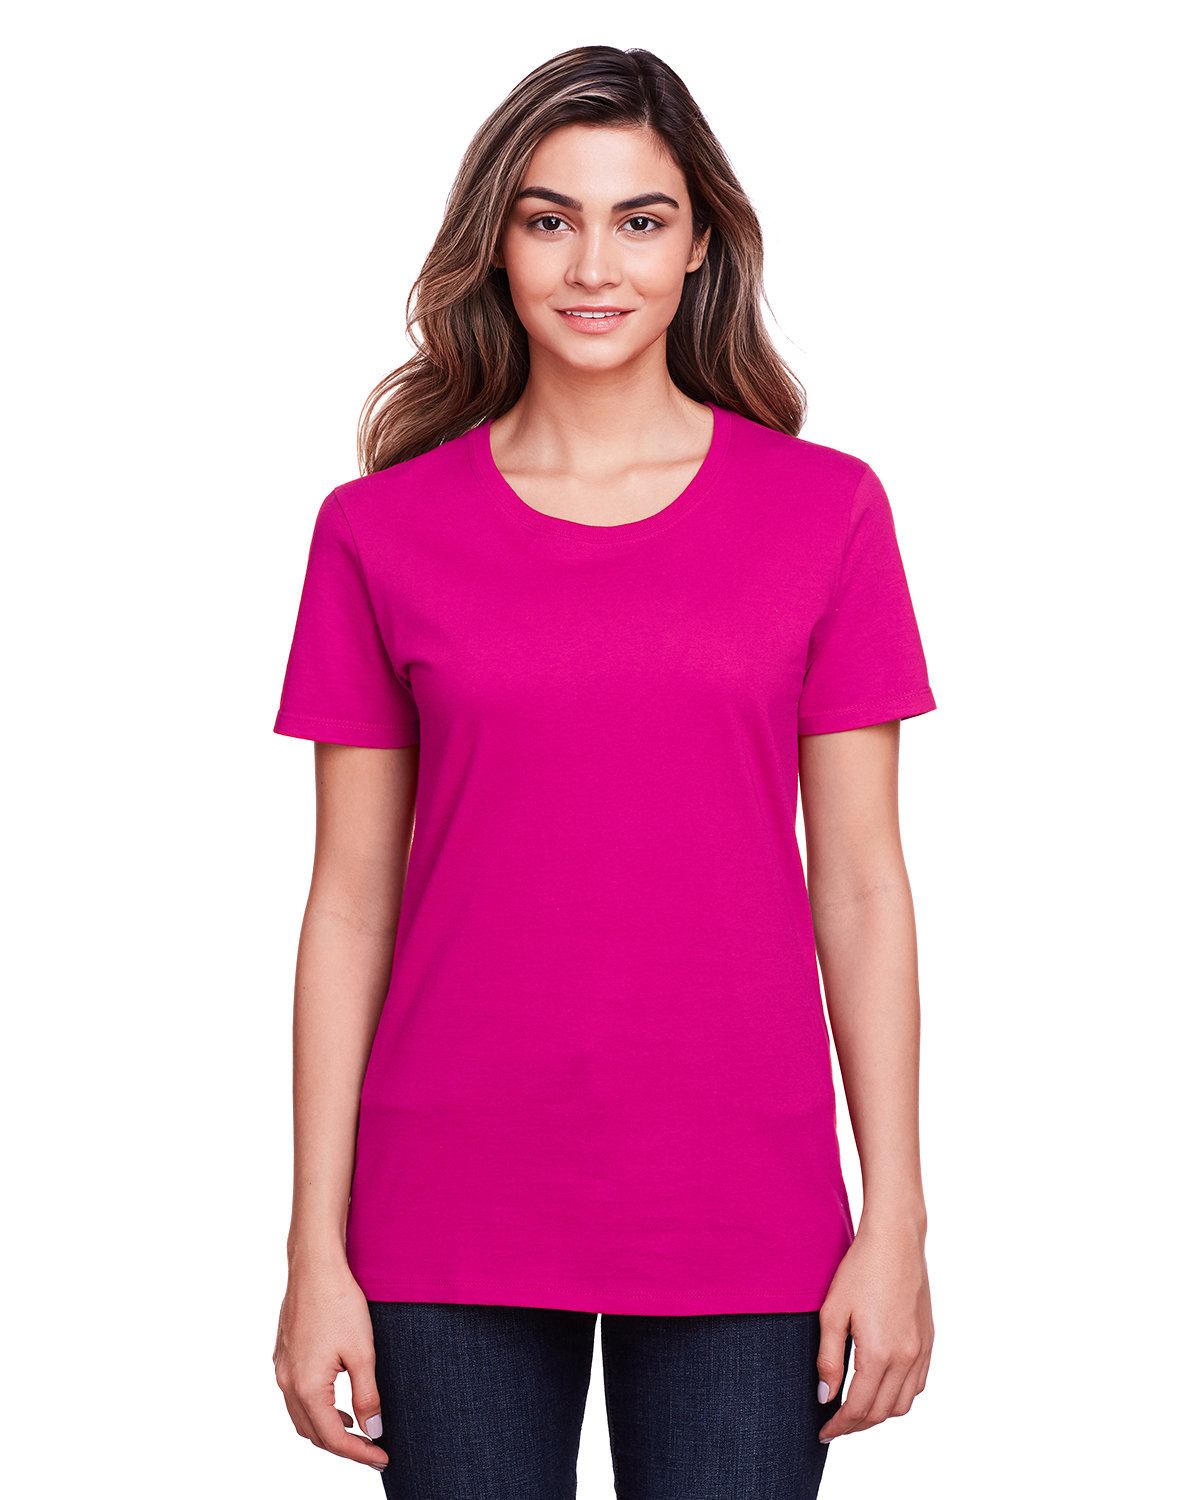 Fruit of the Loom Ladies' ICONIC™ T-Shirt CYBER PINK